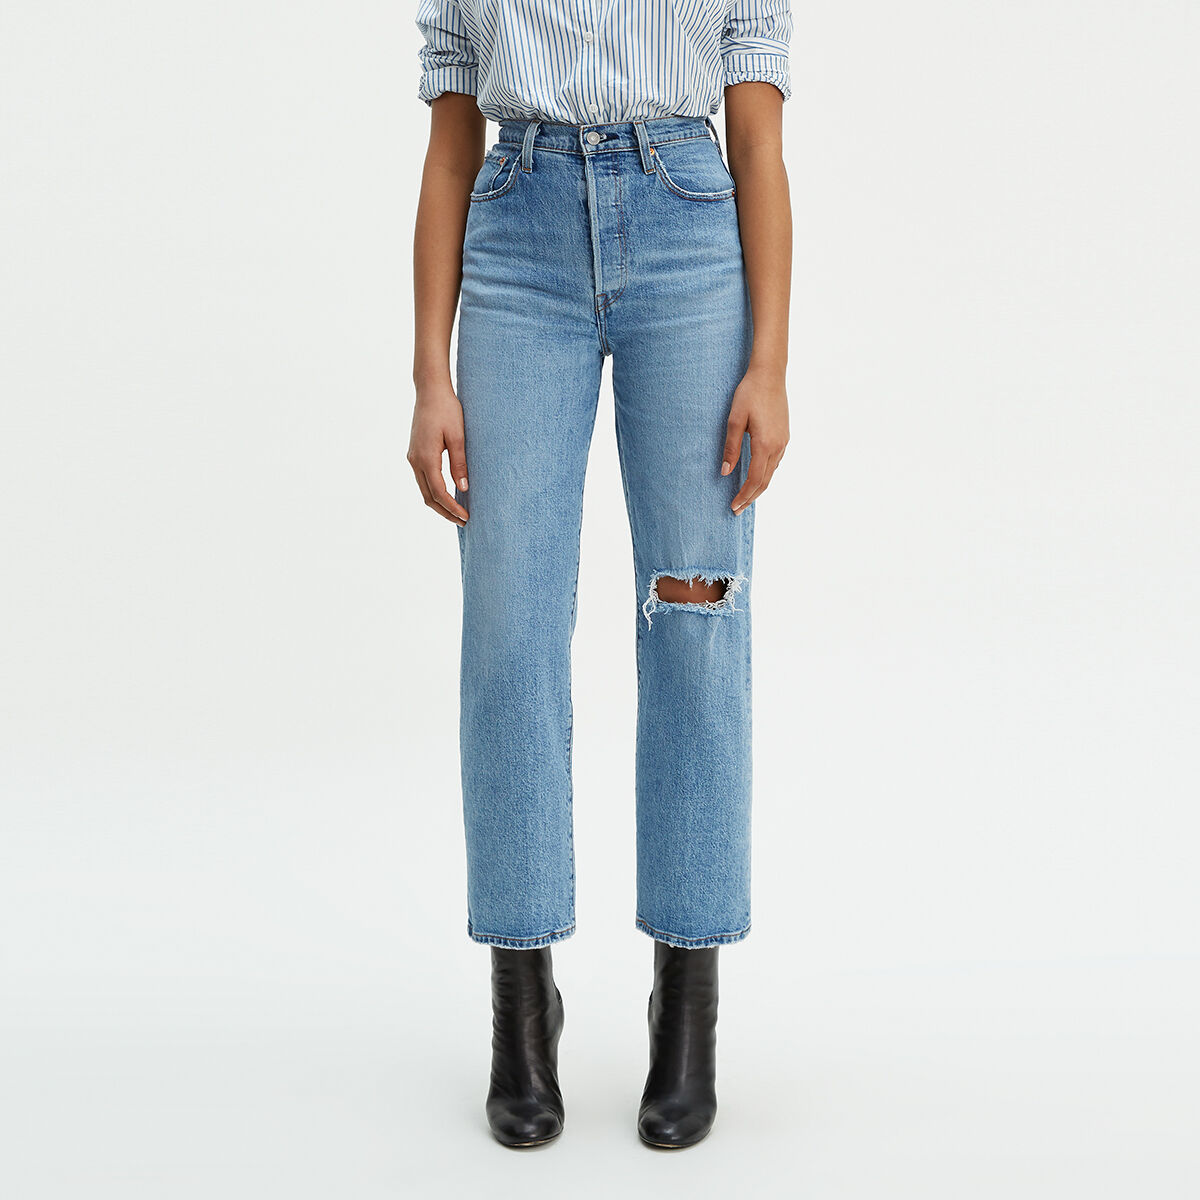 Find For Levi's® Perfect Women Jeans Your awwnxS